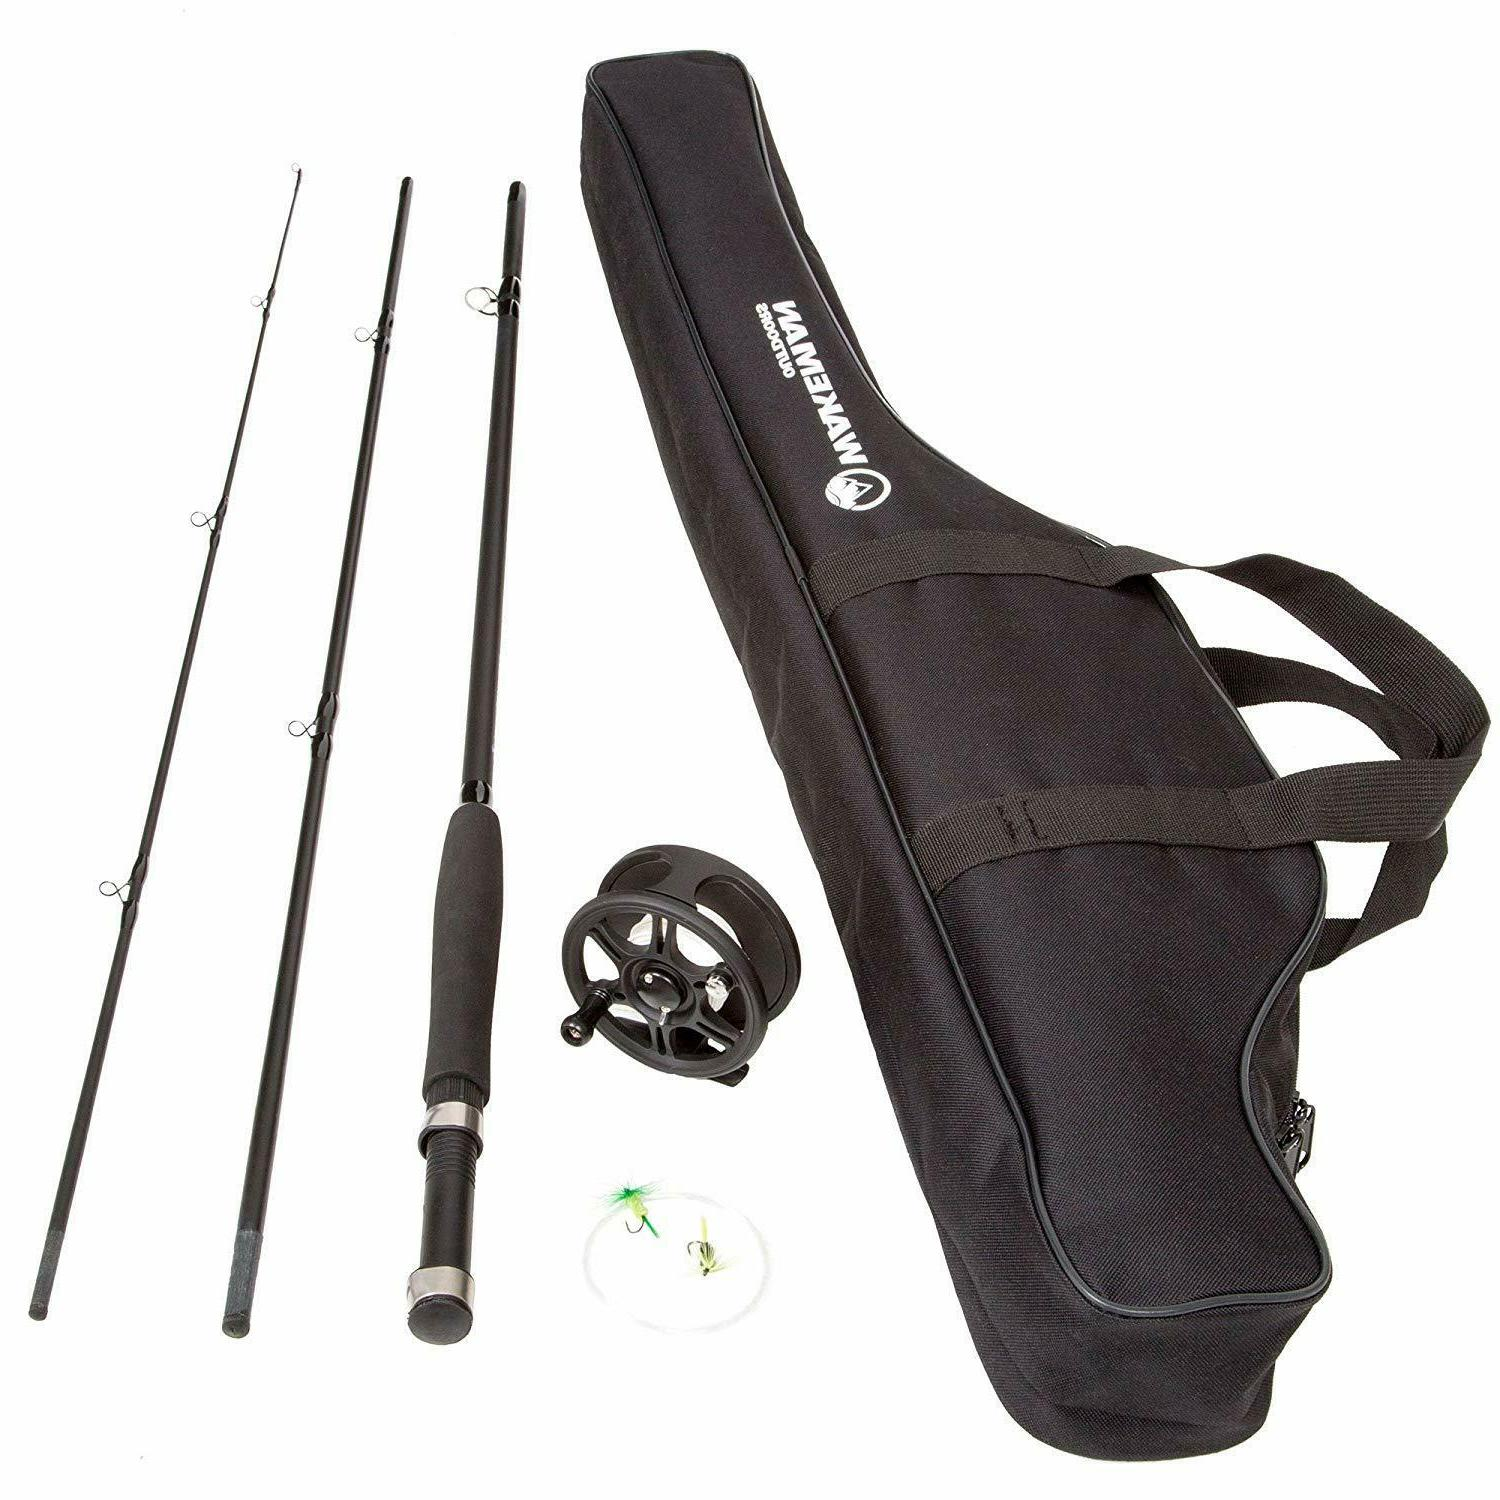 Fly Fishing Rod and Reel Combo with Carrying Case Bag 3 Piec